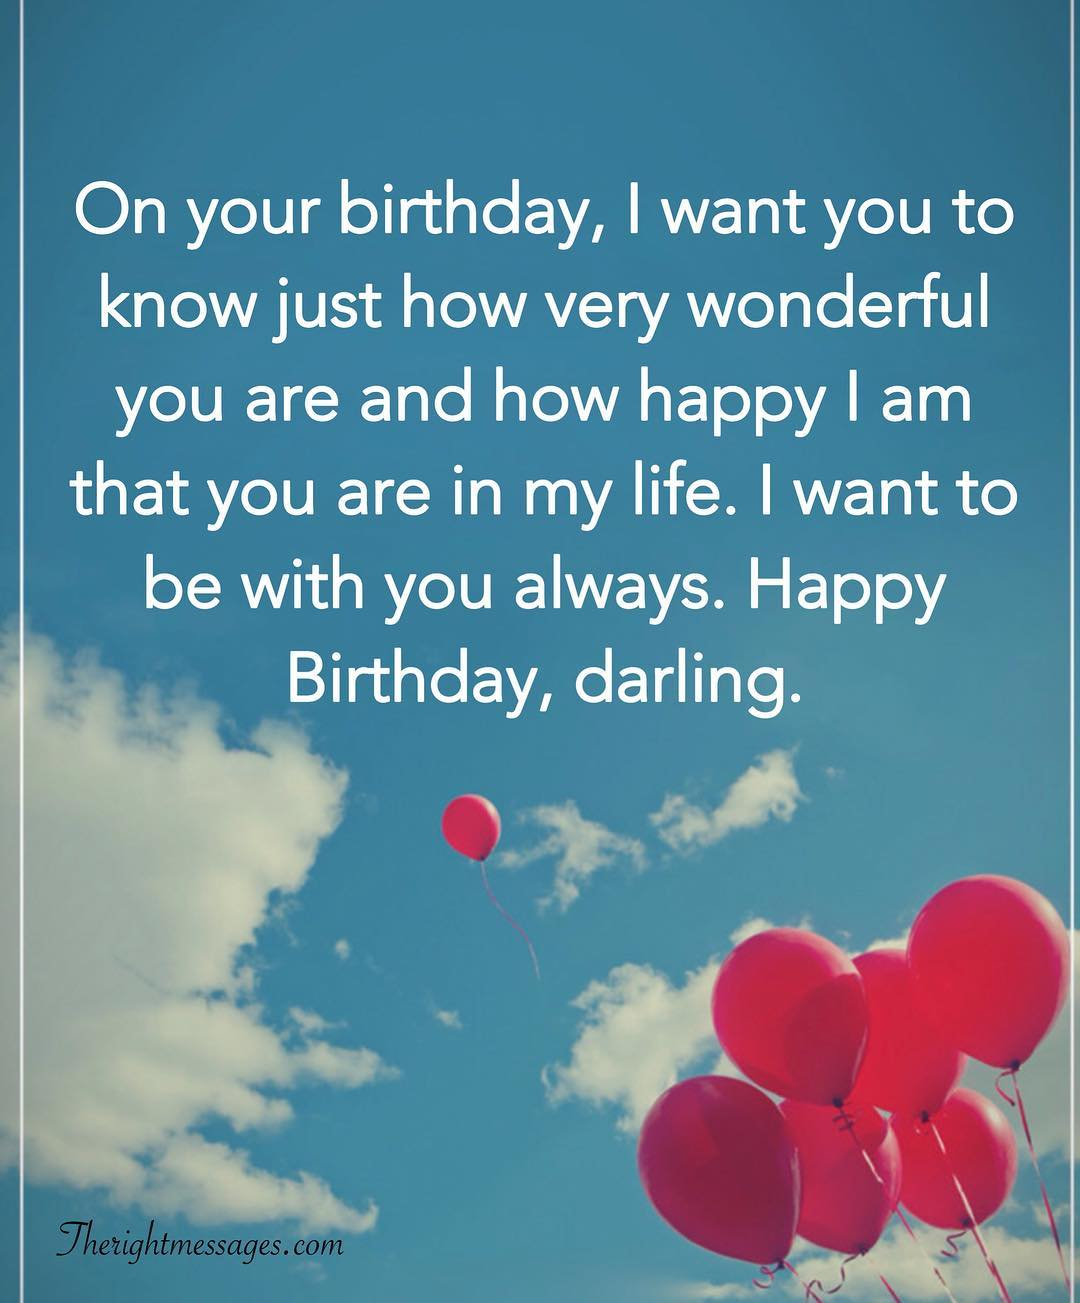 Short And Long Romantic Birthday Wishes For Boyfriend | The Right ...